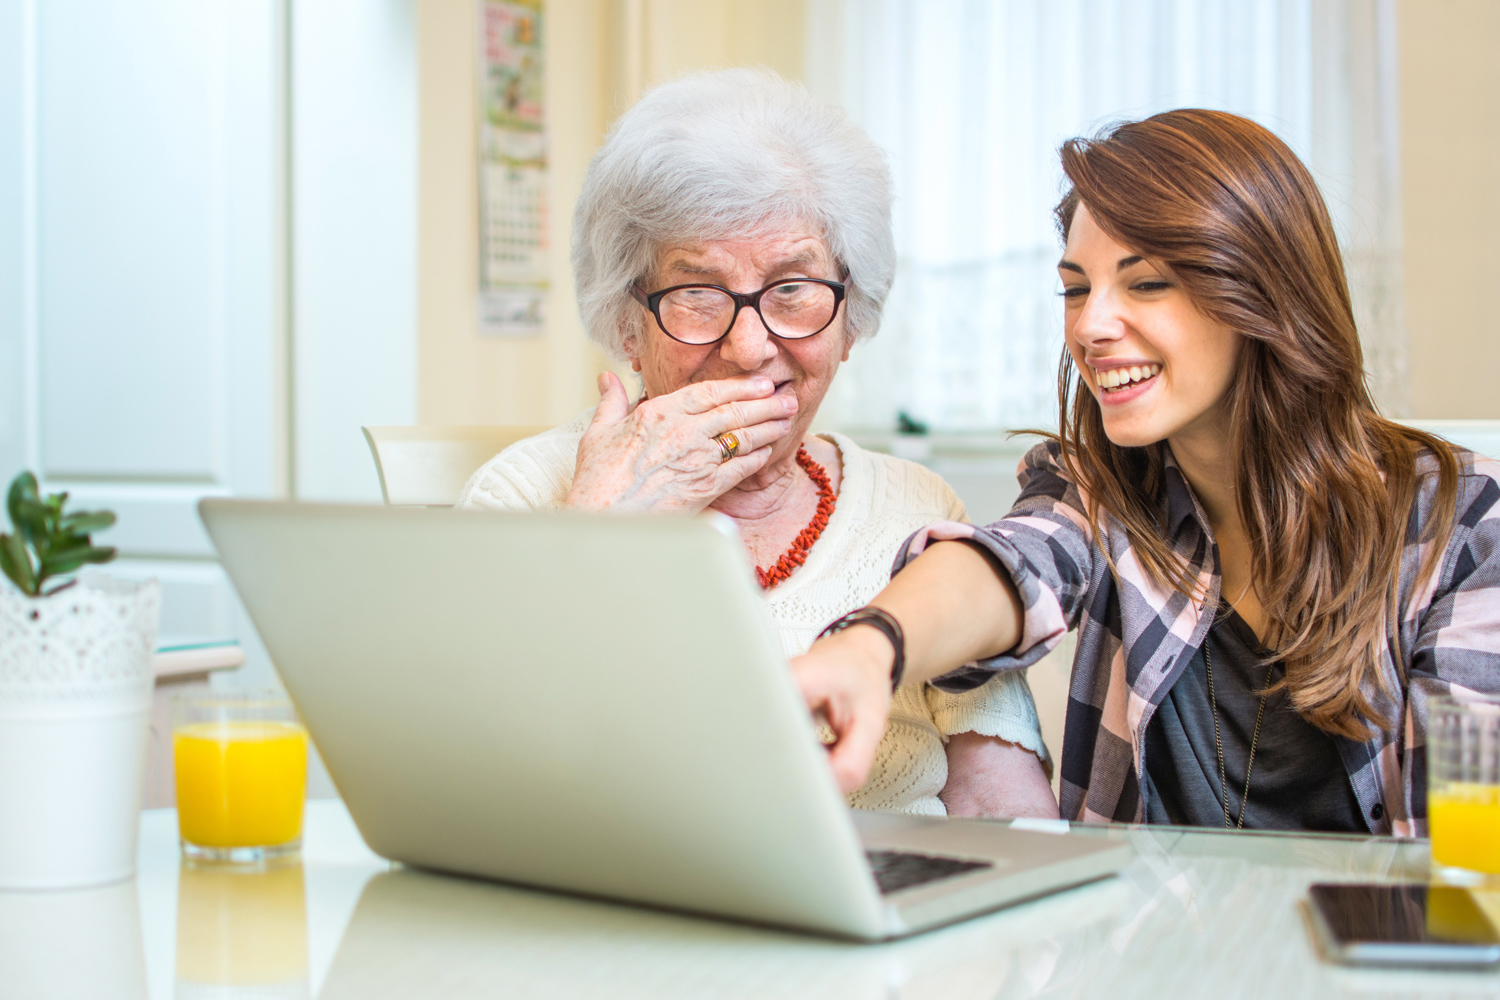 1-Granddaughter-pointing-at-something-on-laptop-screen-to-her-grandma-at-home.jpg